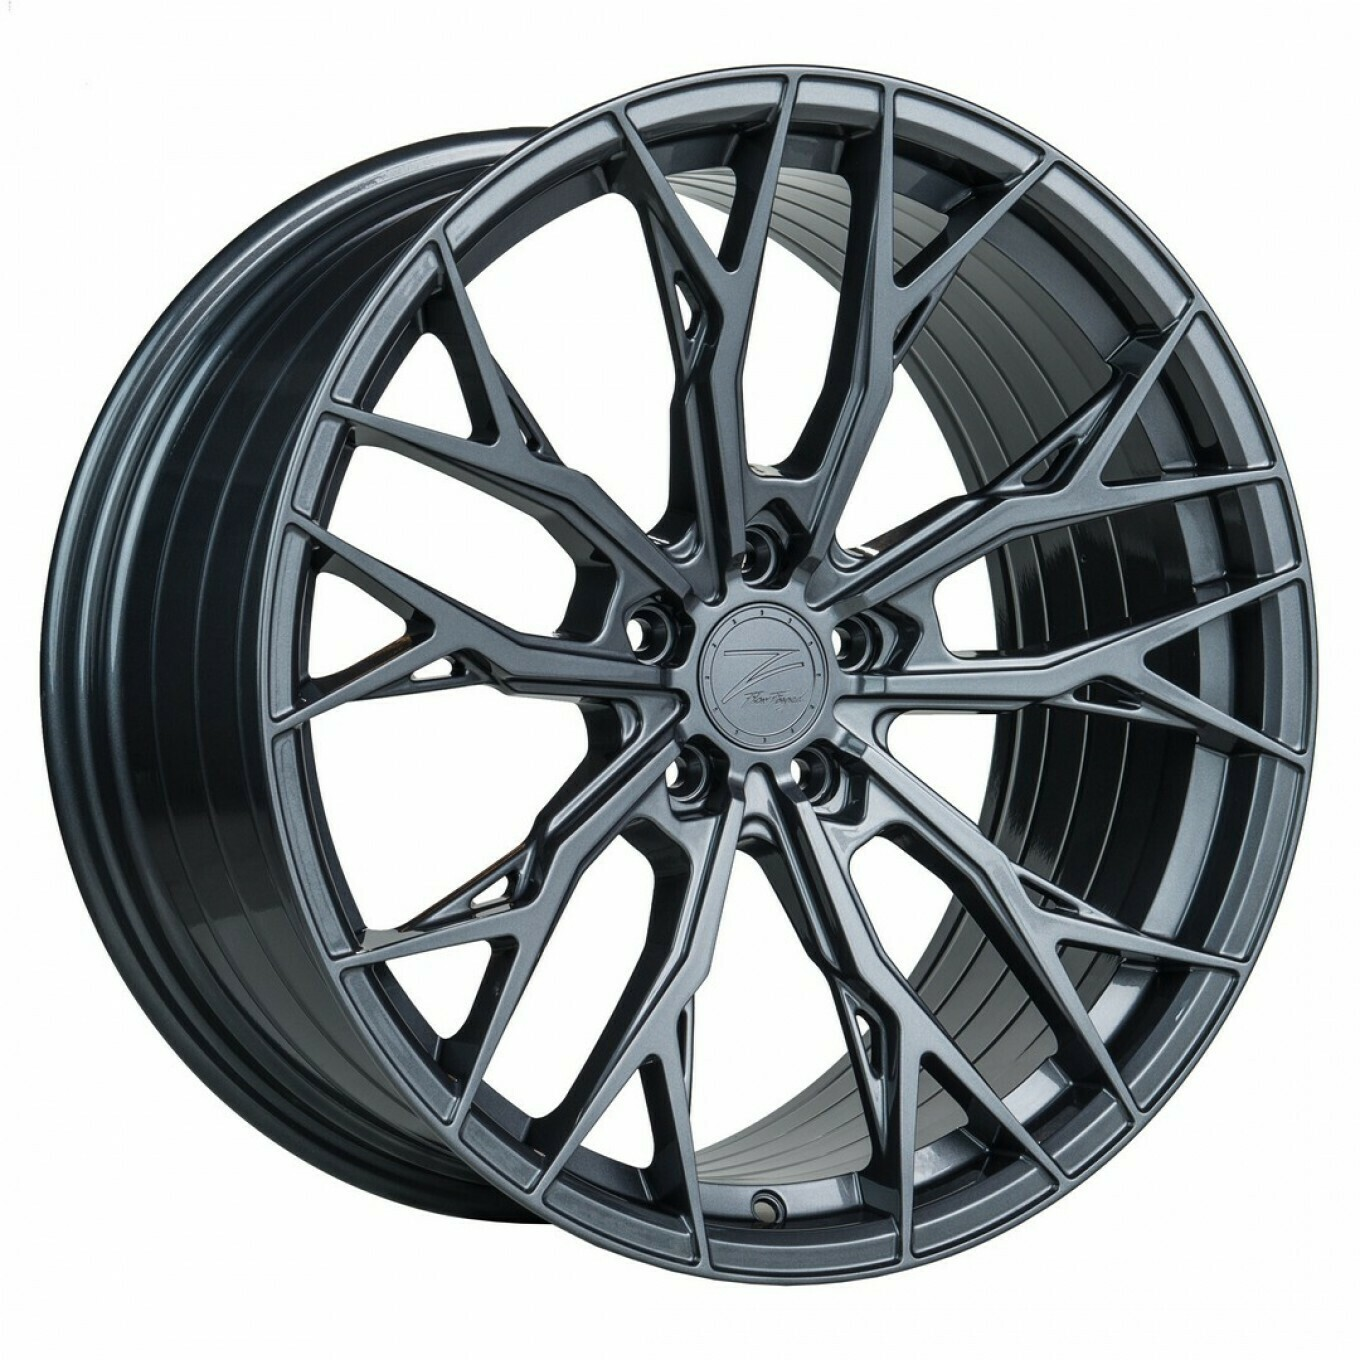 Z-Performance ZP7.1 9,5x20 Et40 5x112 FlowForged Gloss Metal